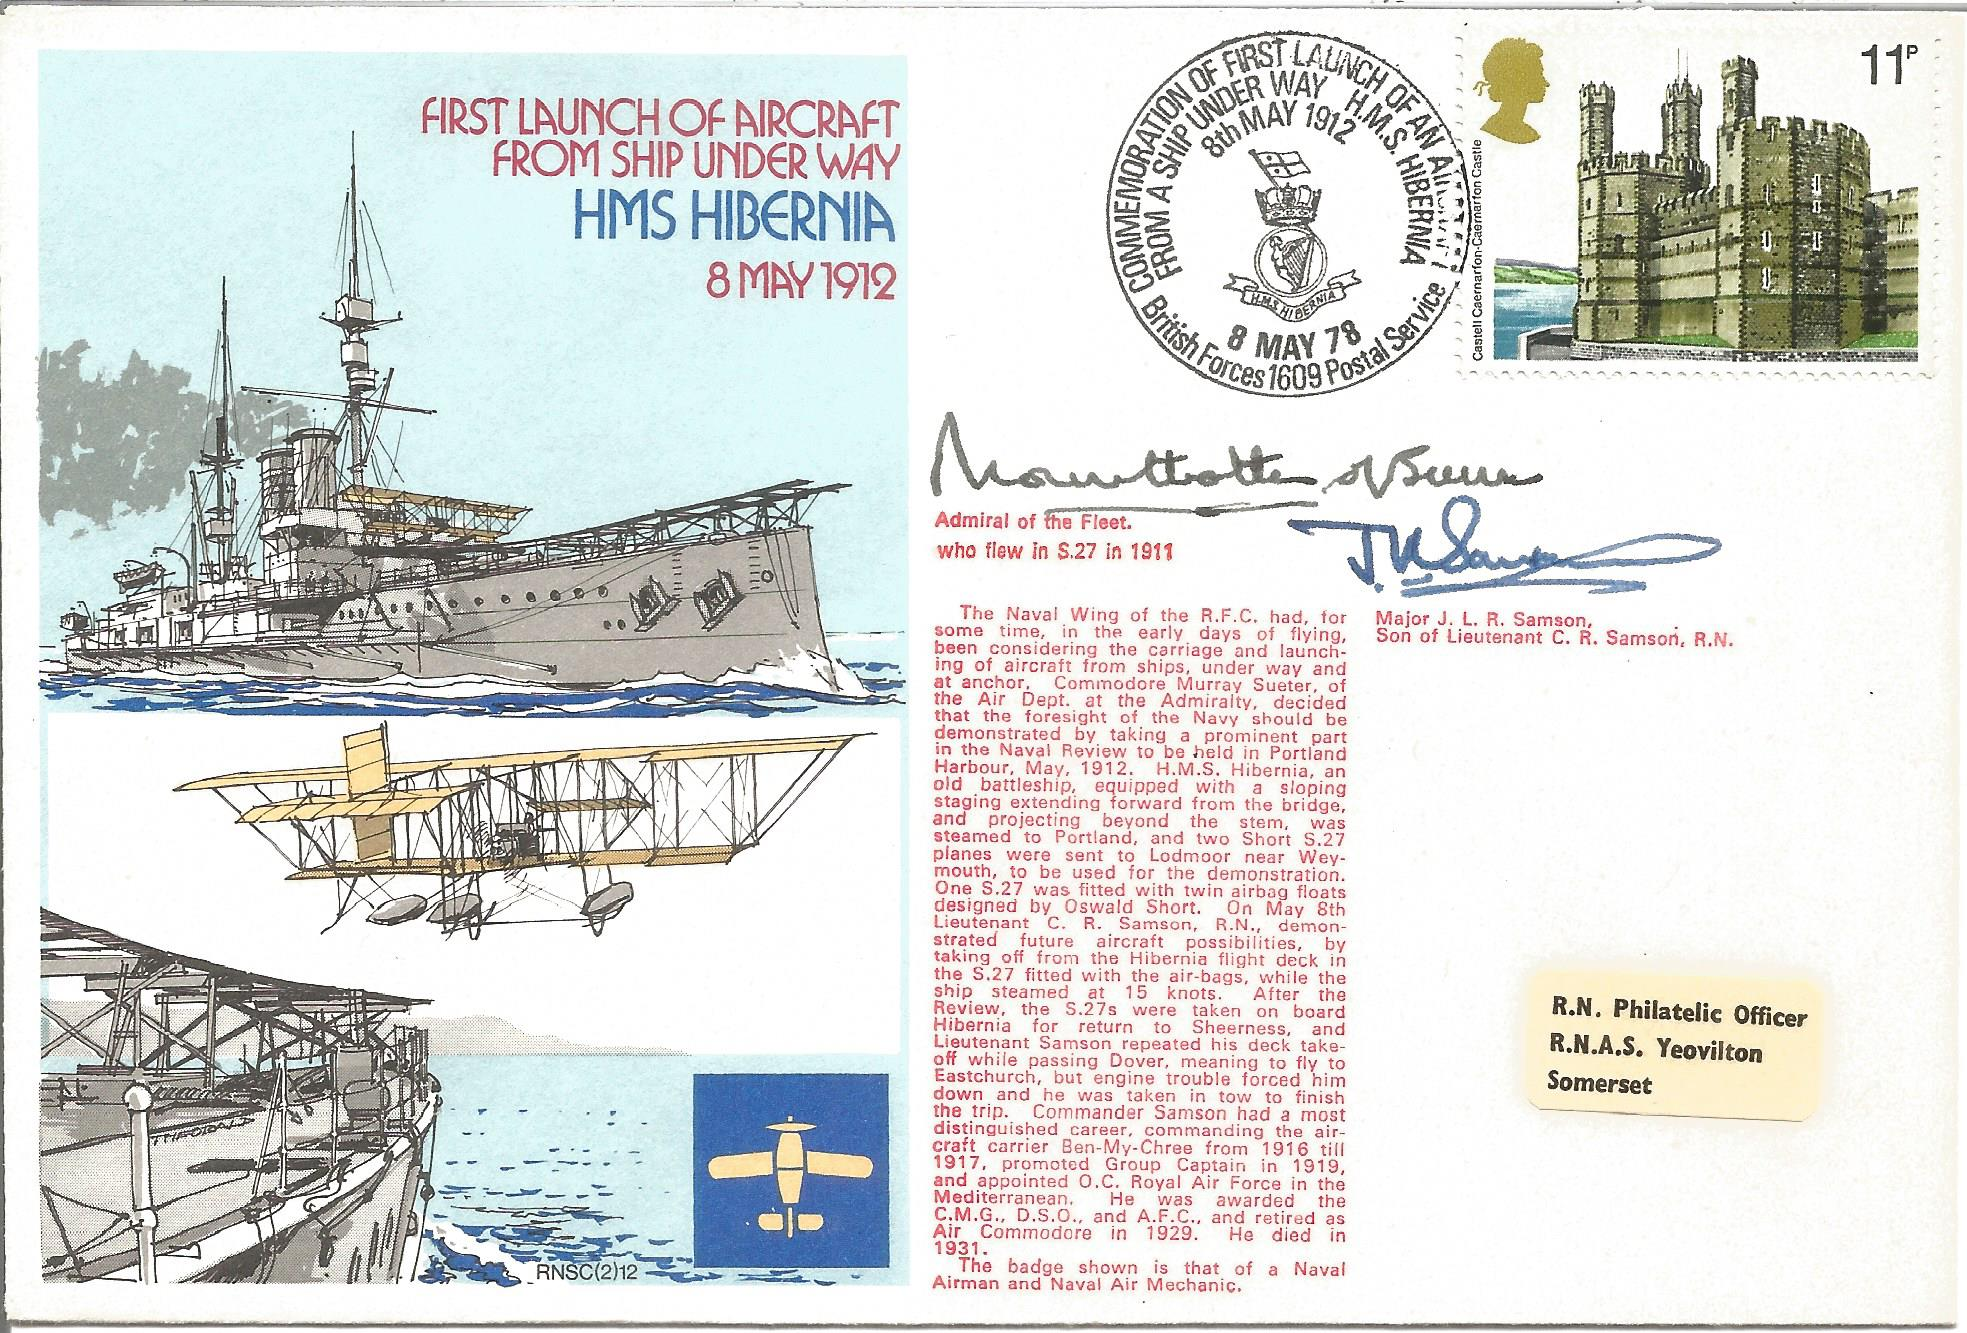 Mountbatten of Burma and Major J. L. R. Samson signed HMS Hibernia First Launch of Aircraft from